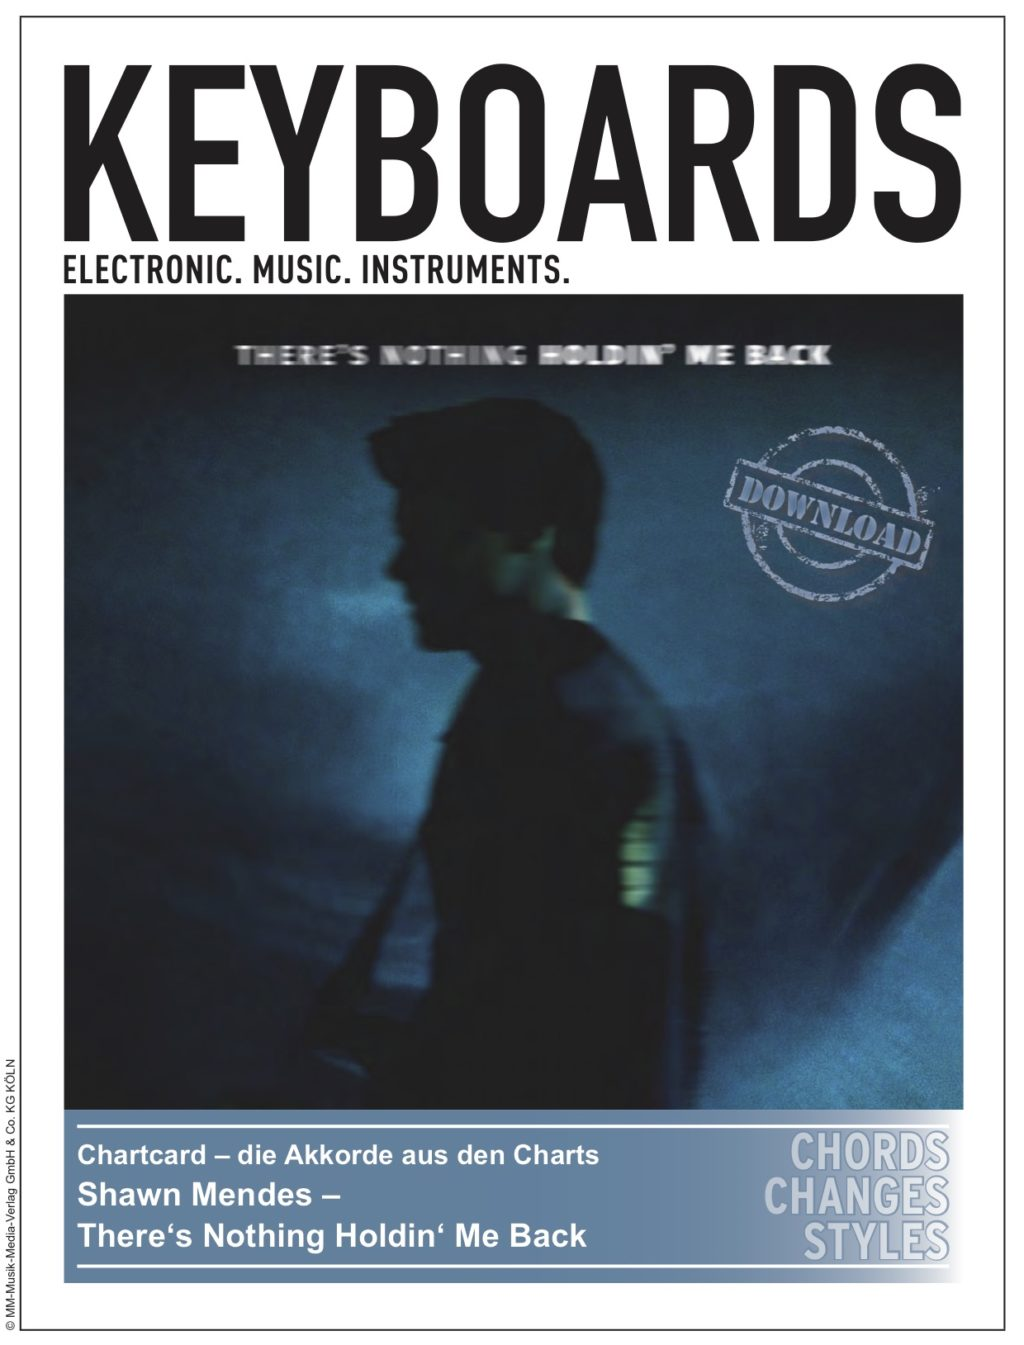 Produkt: Chartcard – Shawn Mendes – There's Nothing Holdin' Me Back